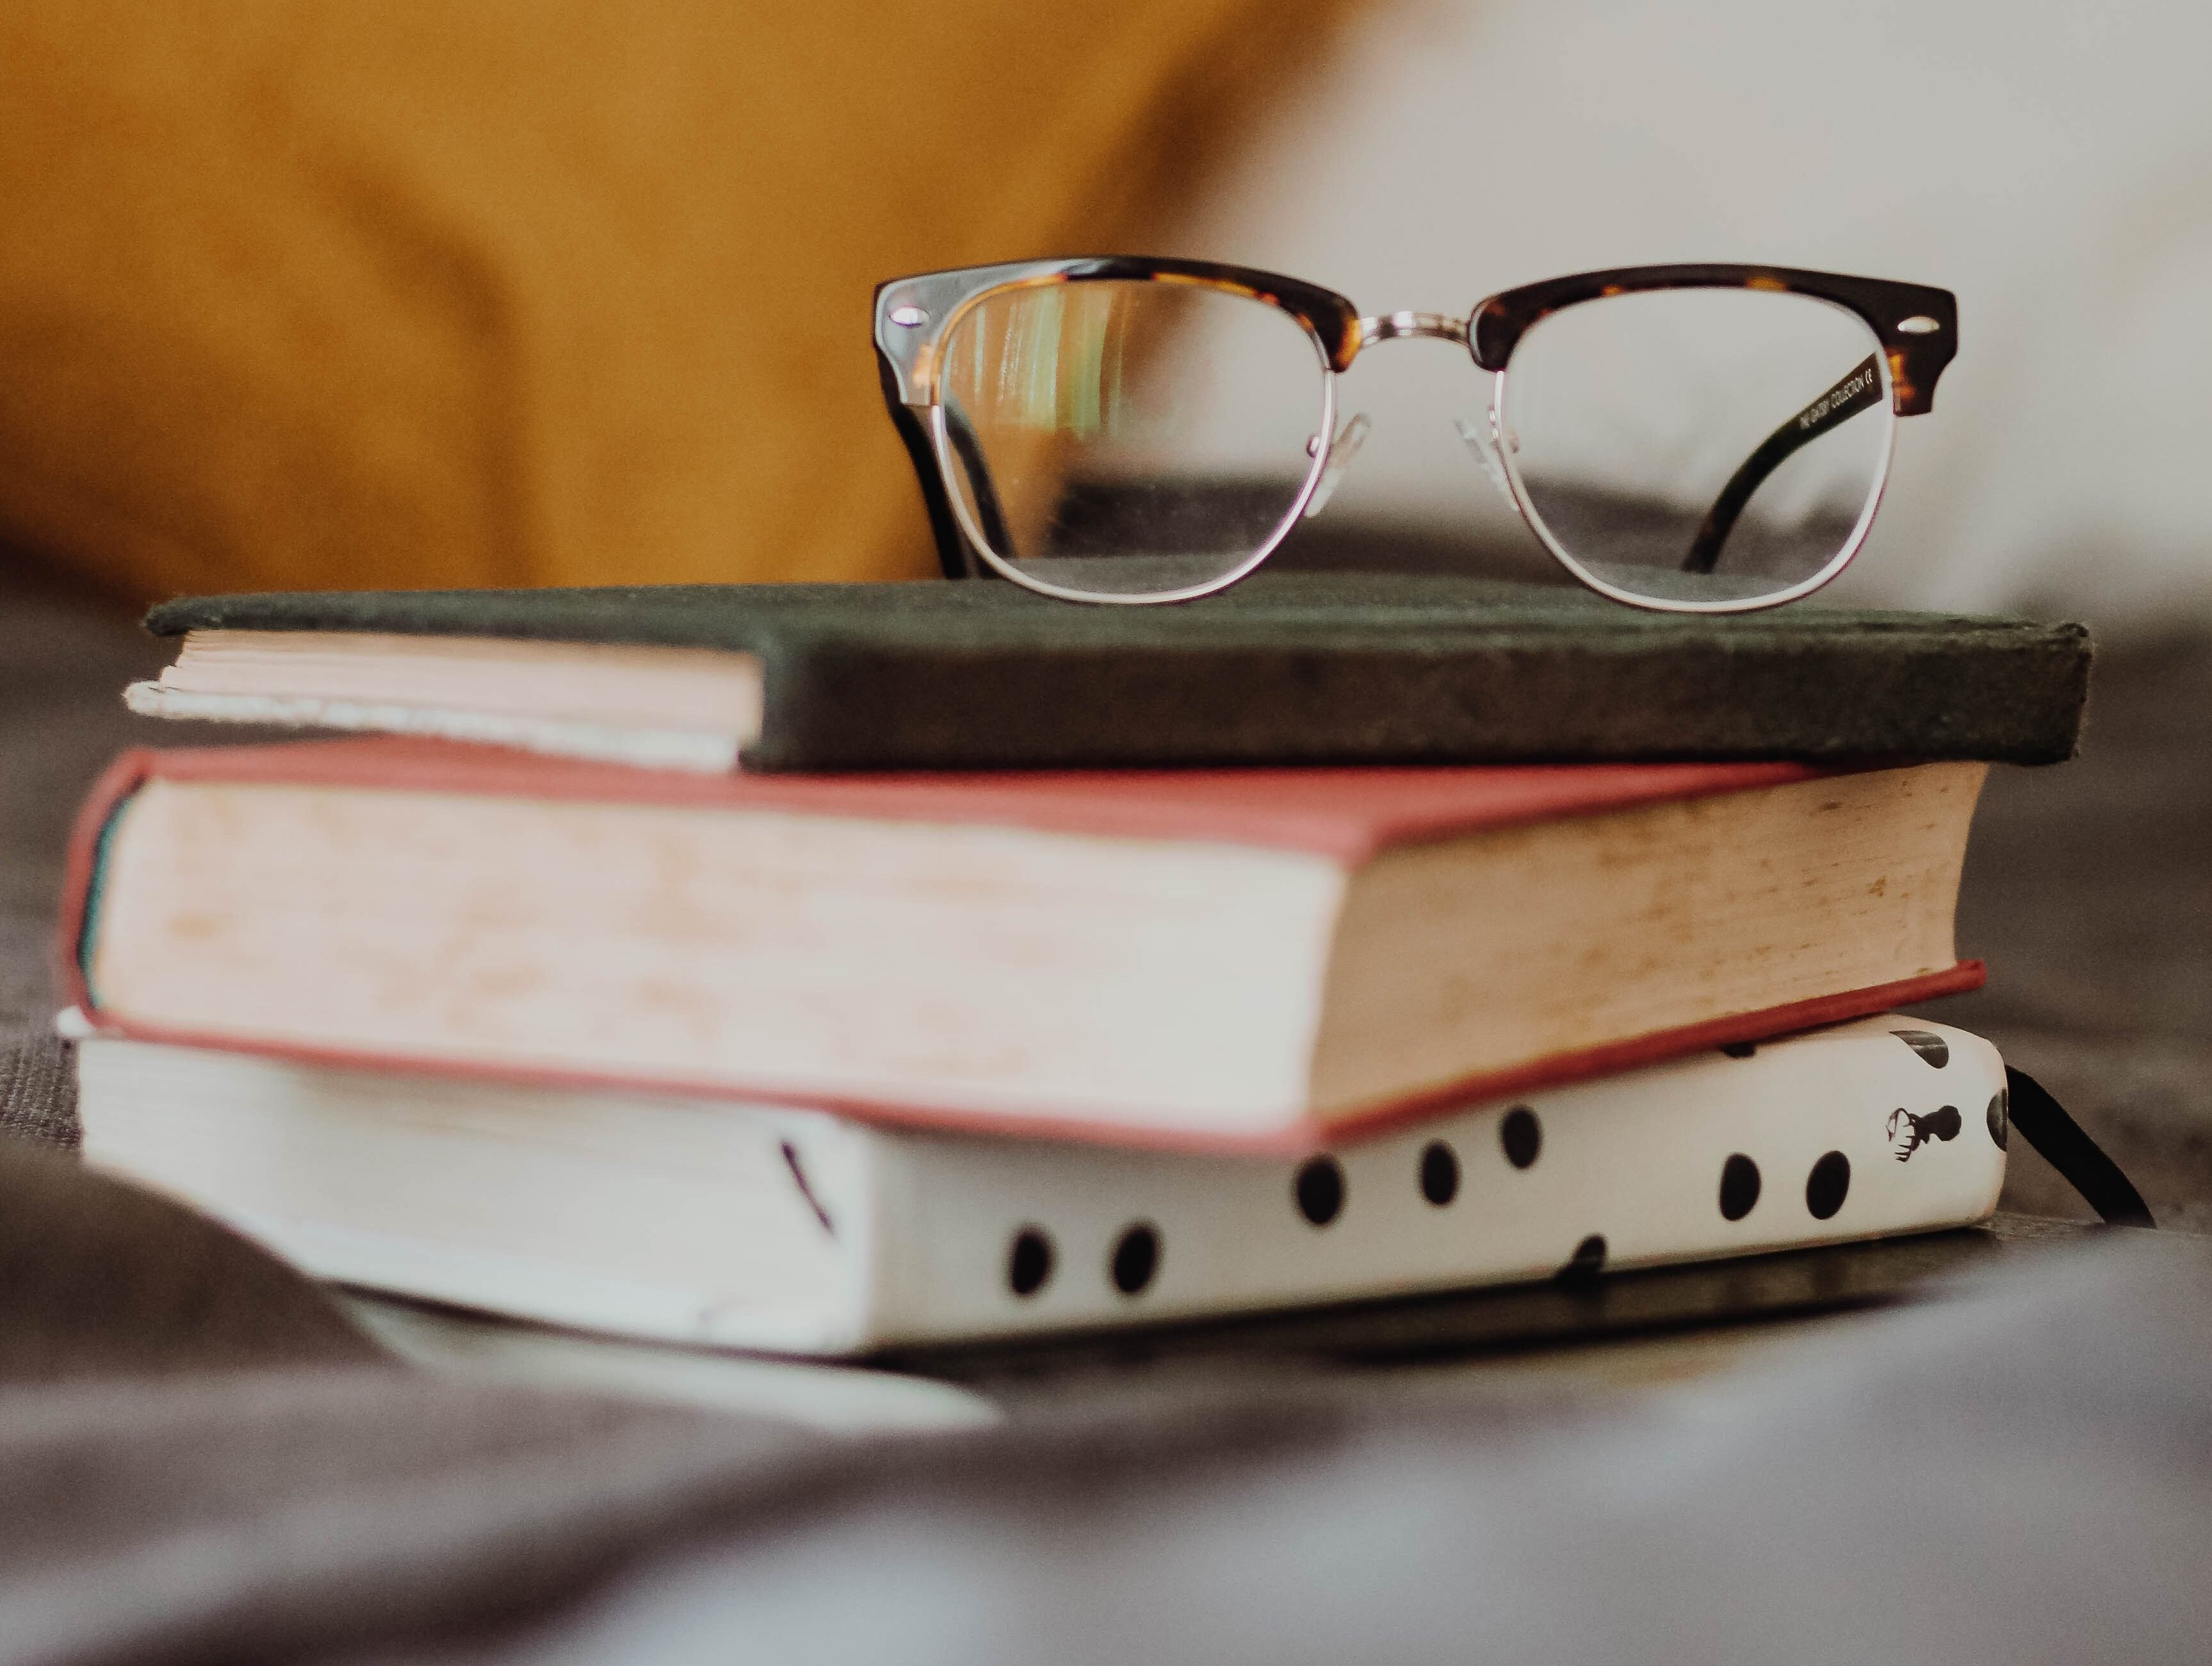 Four books stacked together with reading glasses on top, buy books at the dollar store